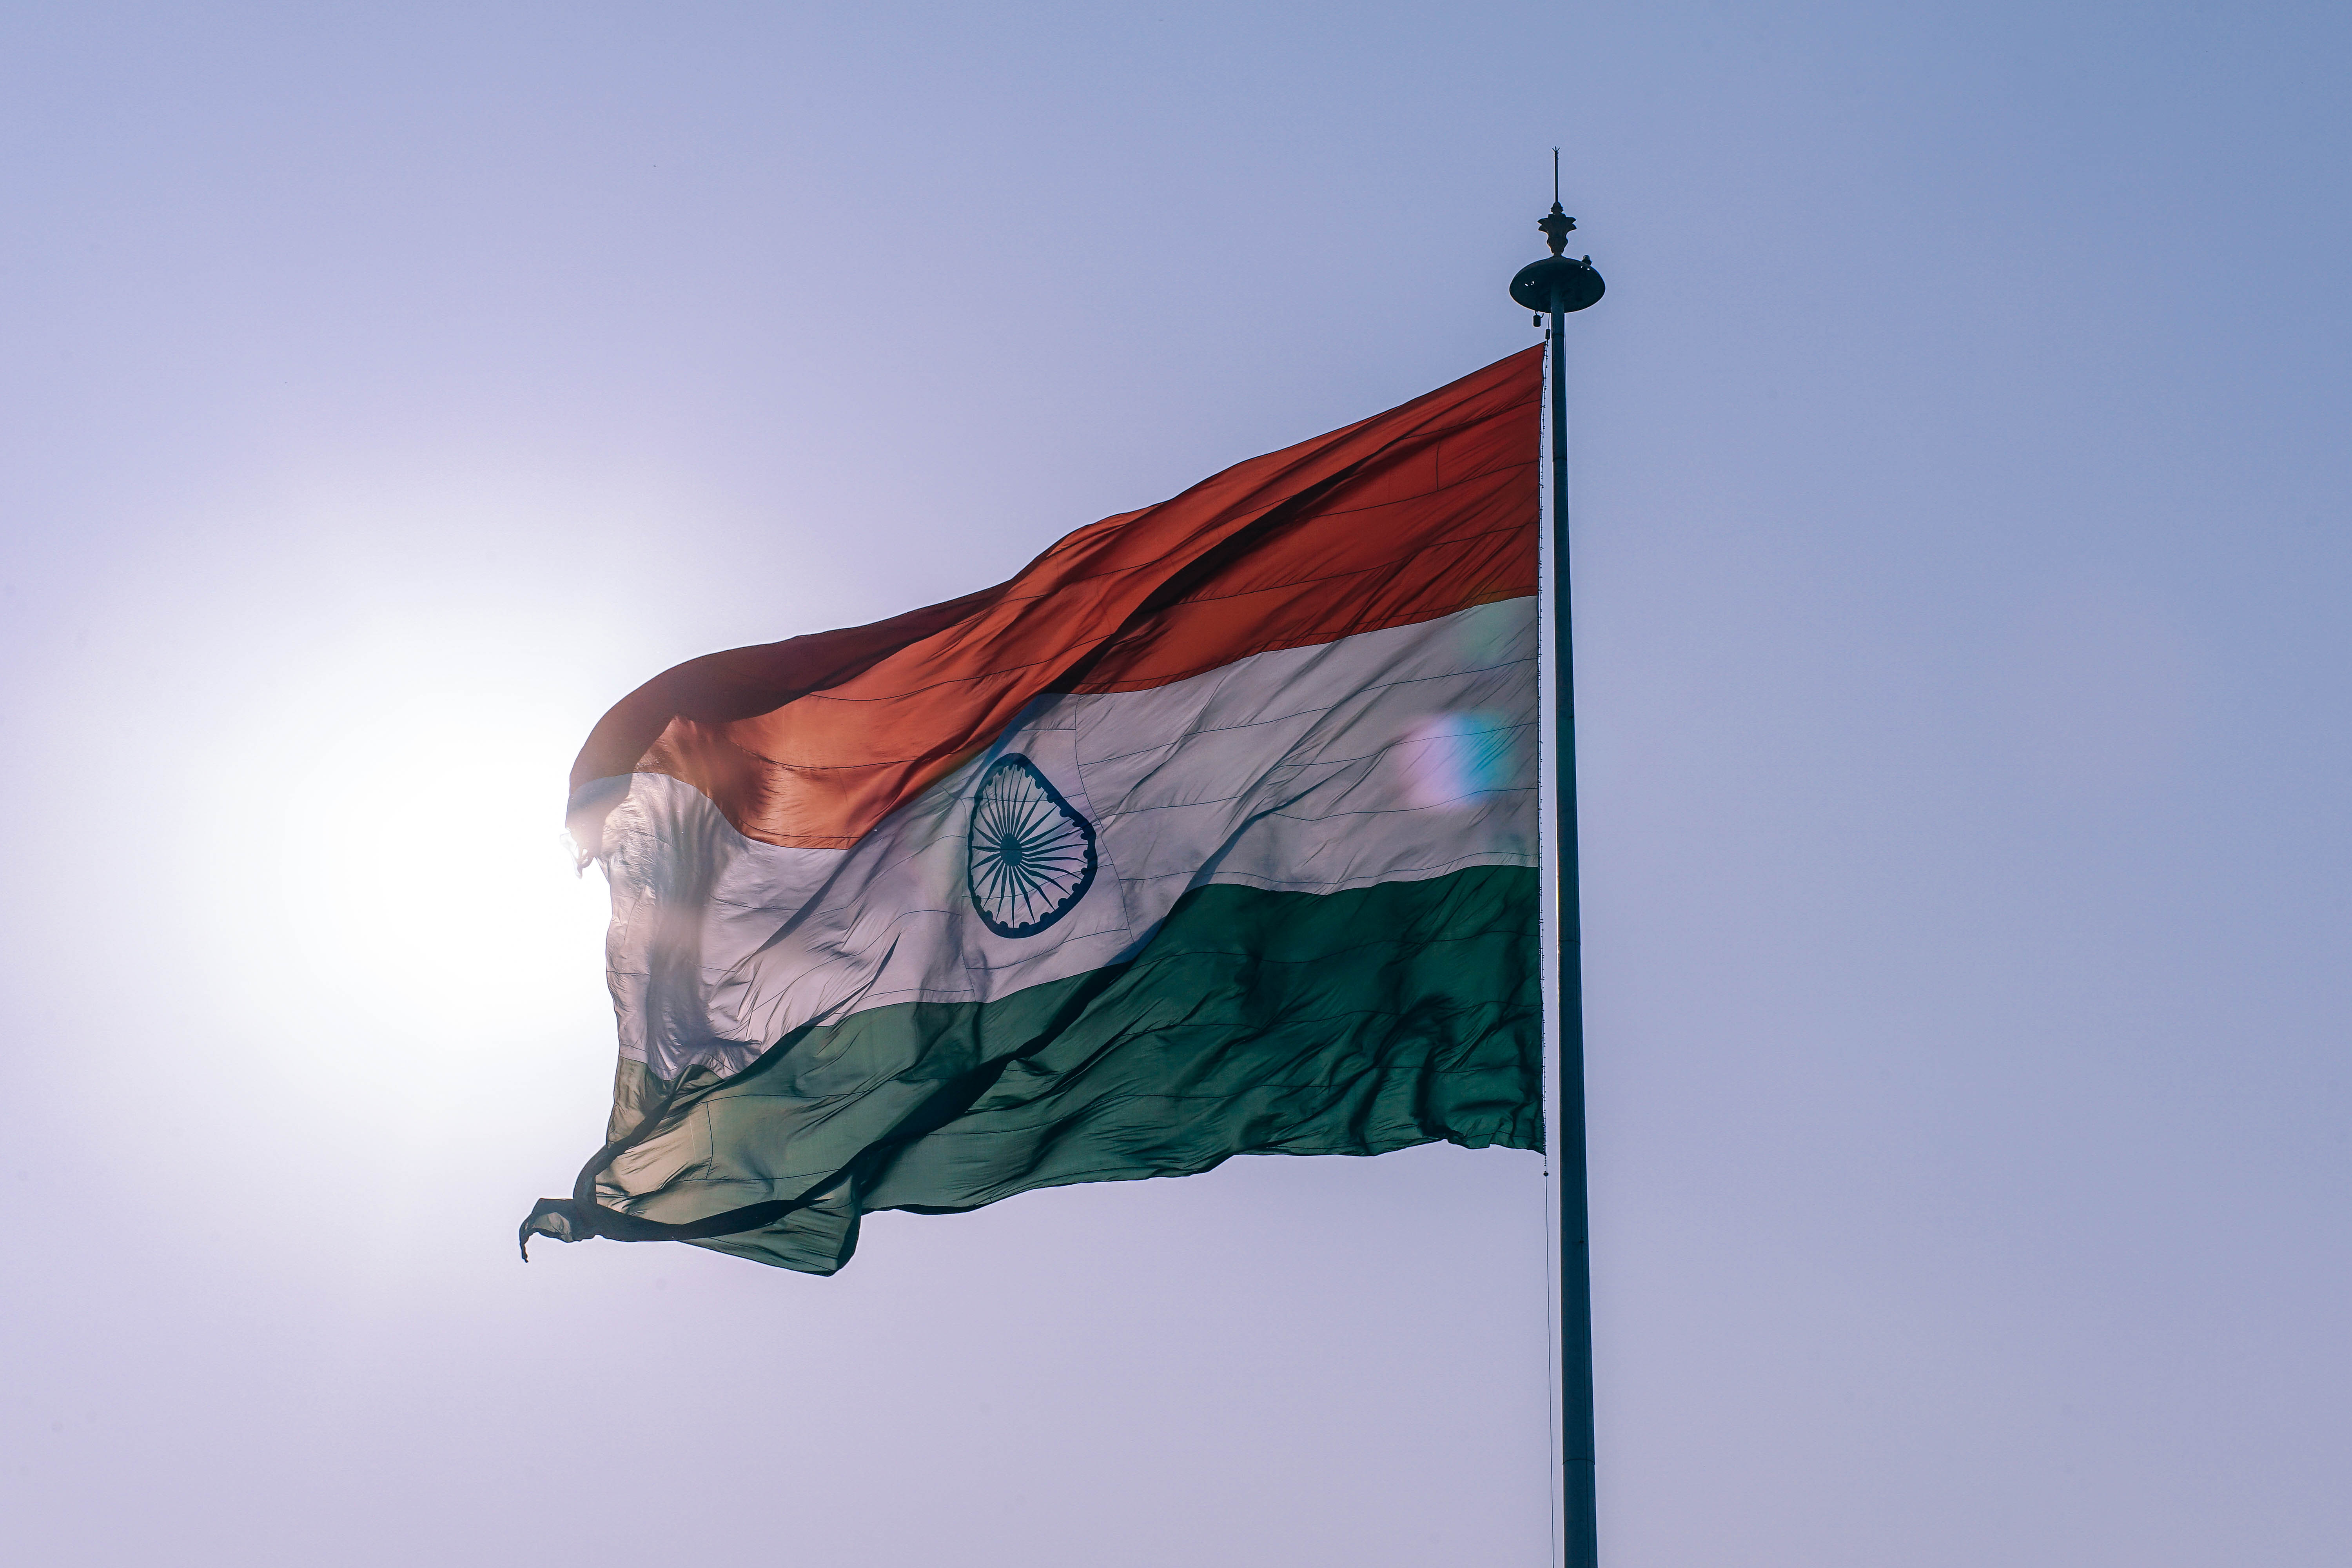 Image of the flag of India